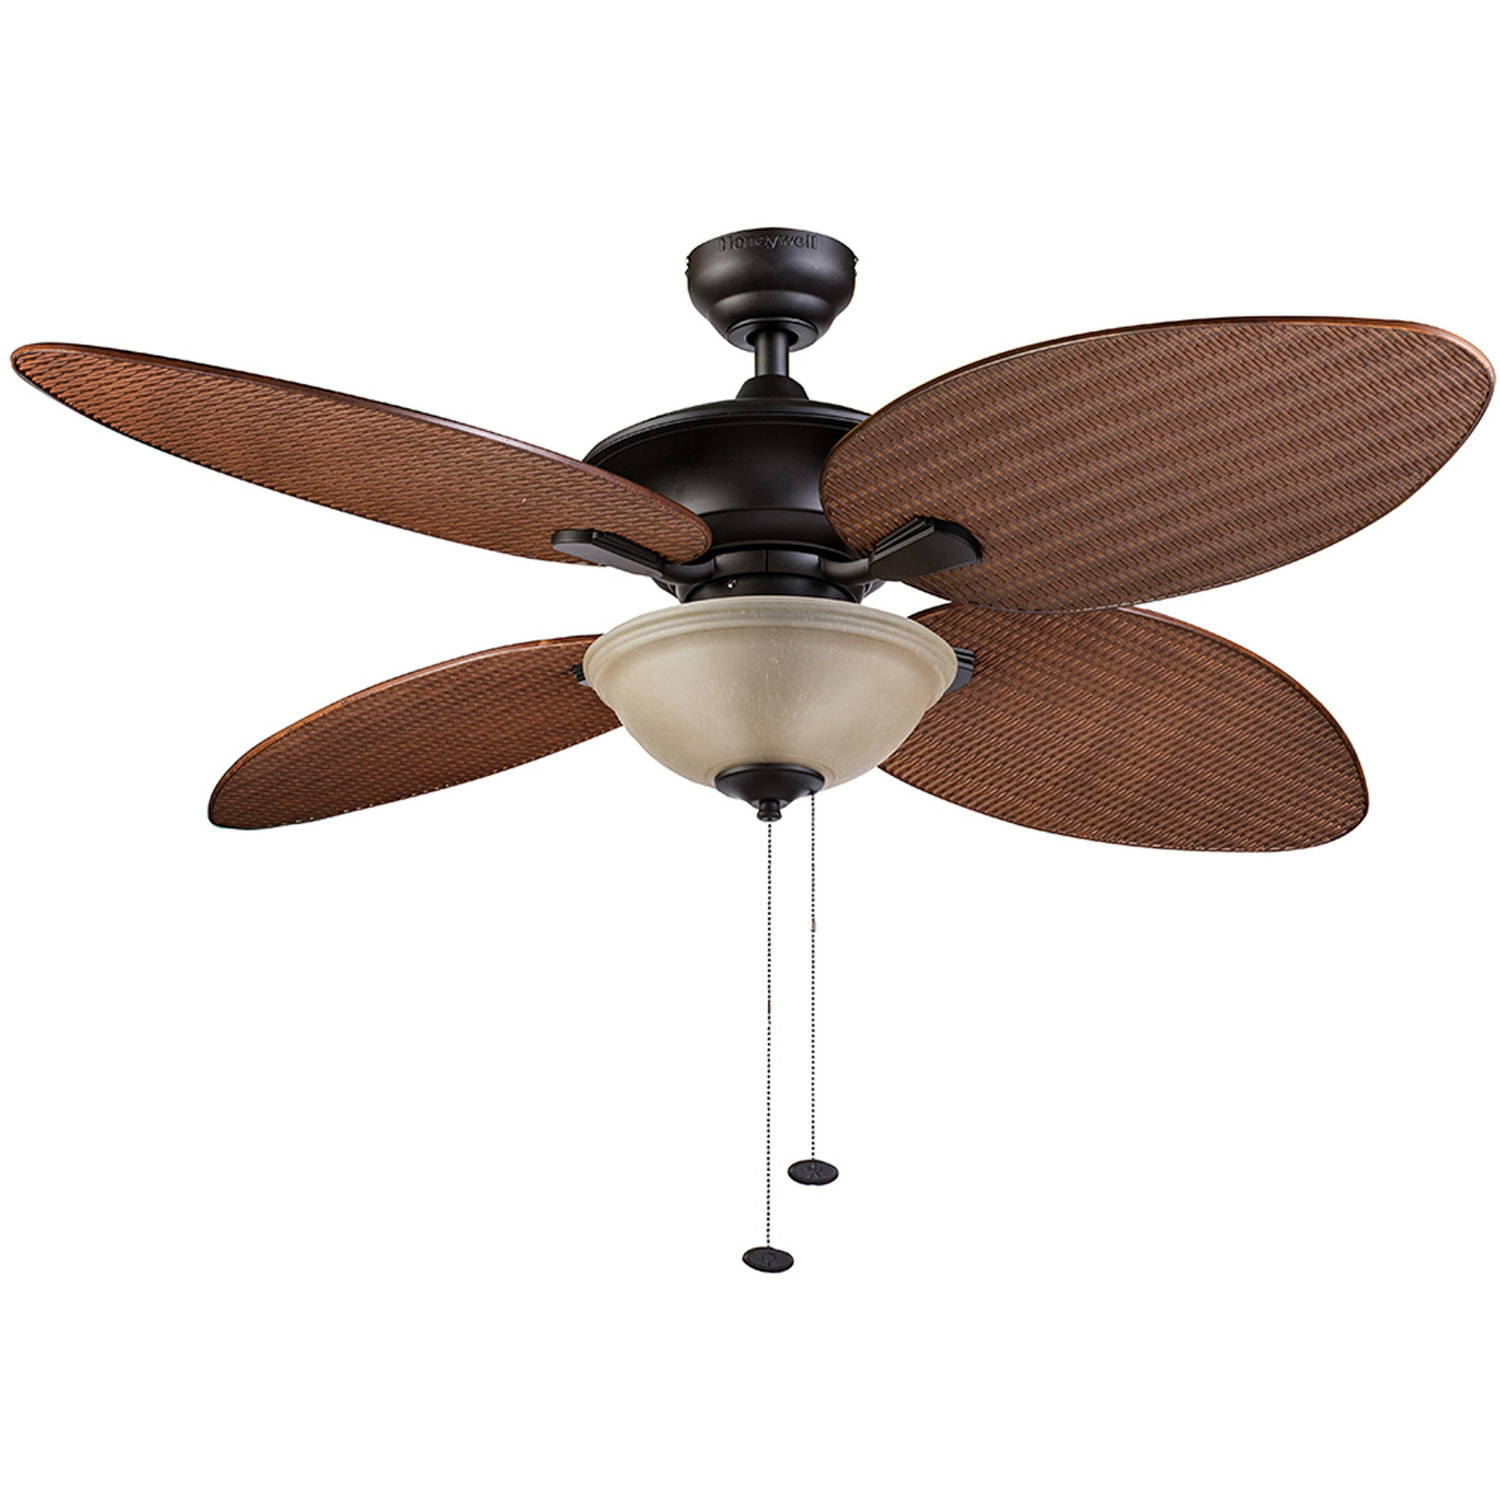 "52"" Honeywell Sunset Key Outdoor Ceiling Fan Bronze Walmart"